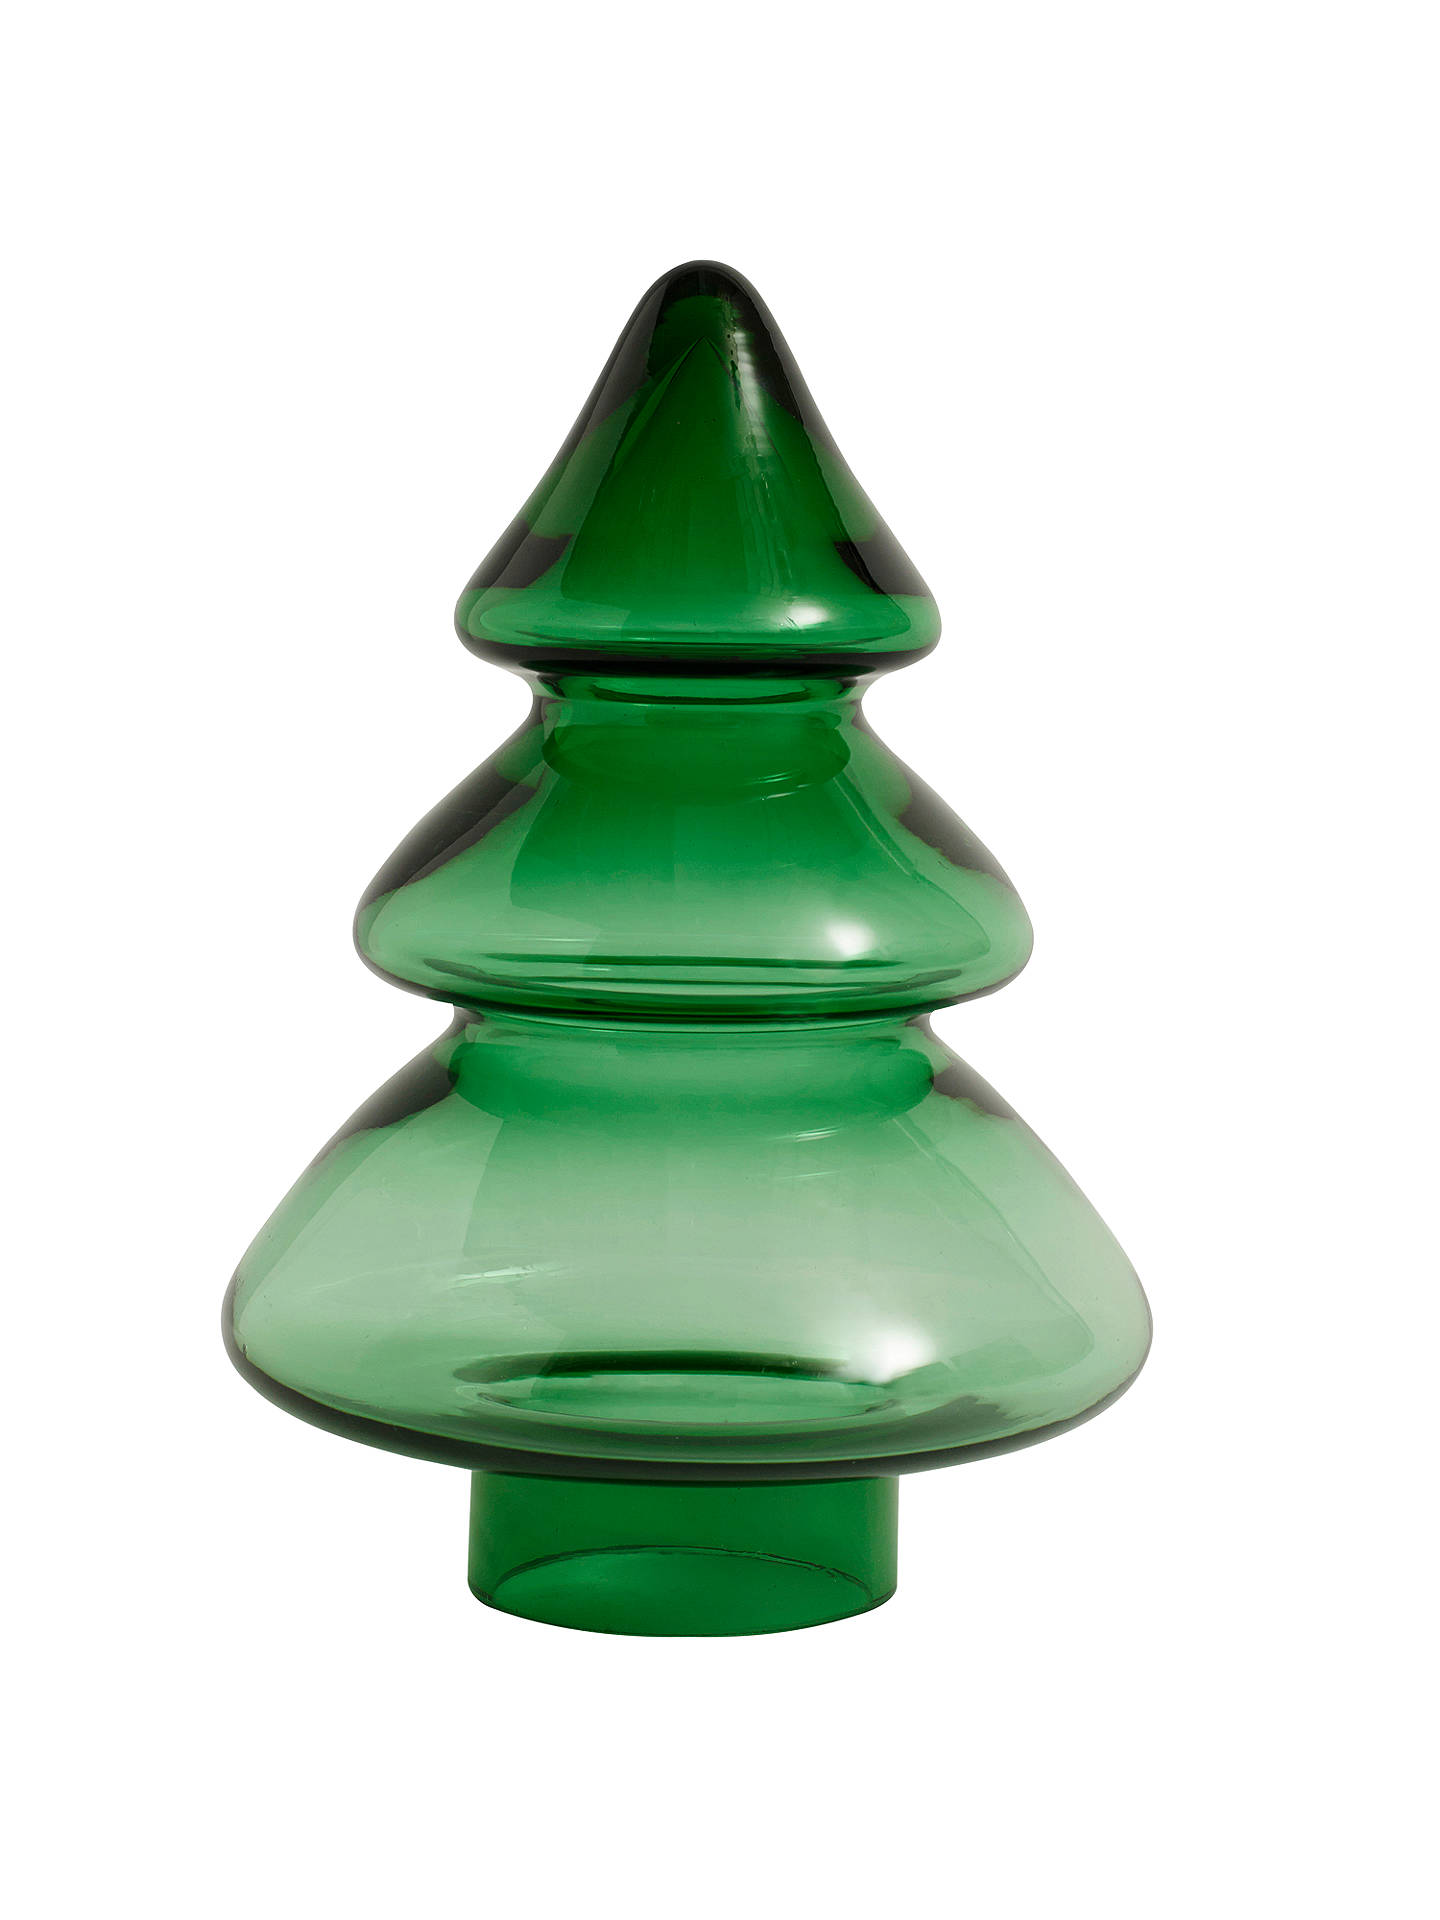 John Lewis Christmas Tree Decorations.John Lewis Large Glass Christmas Tree Ornament Green At